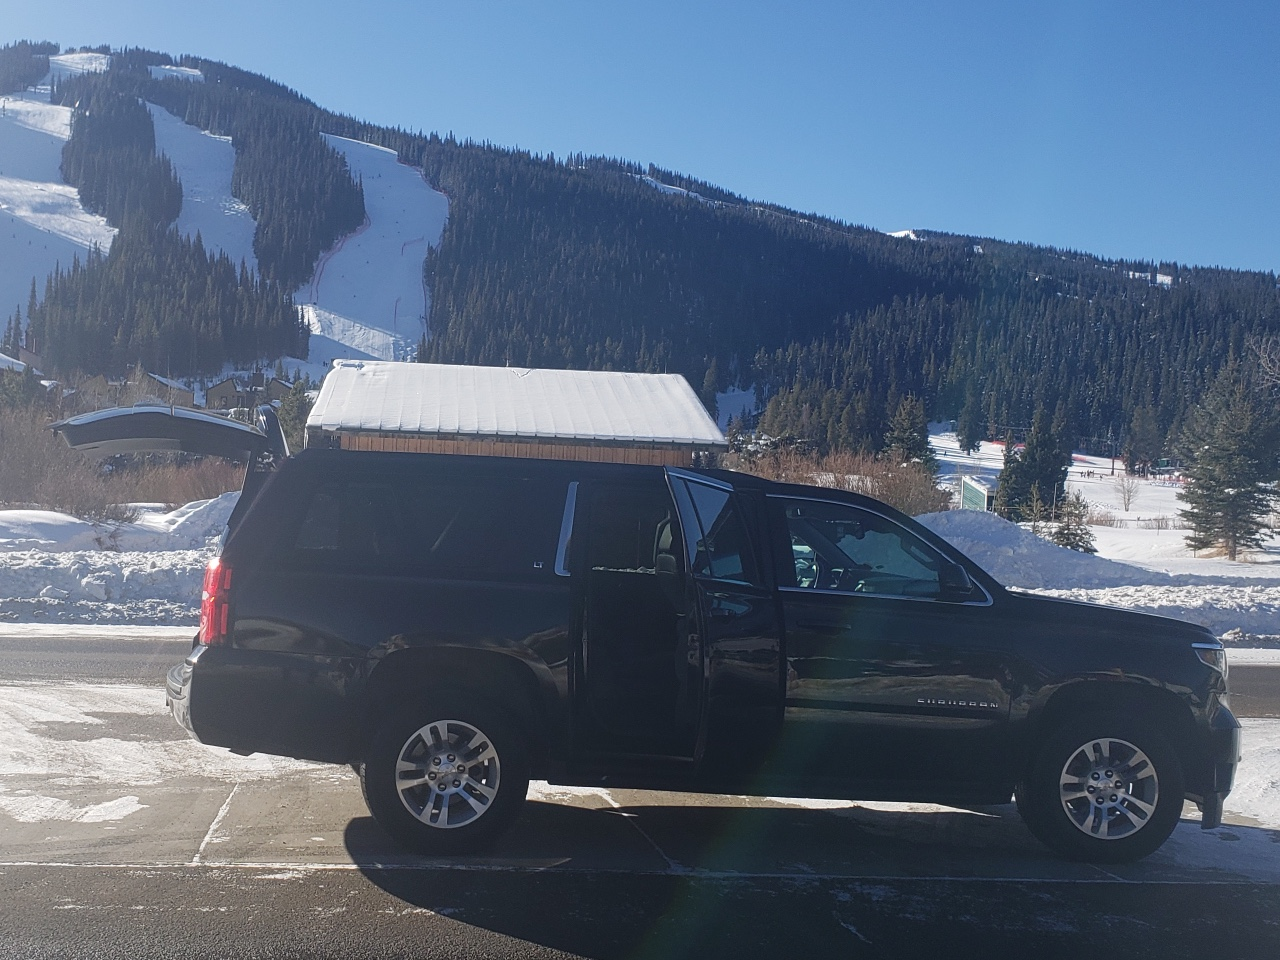 black Suburban SUV ride to Copper Mountain from Denver Airport